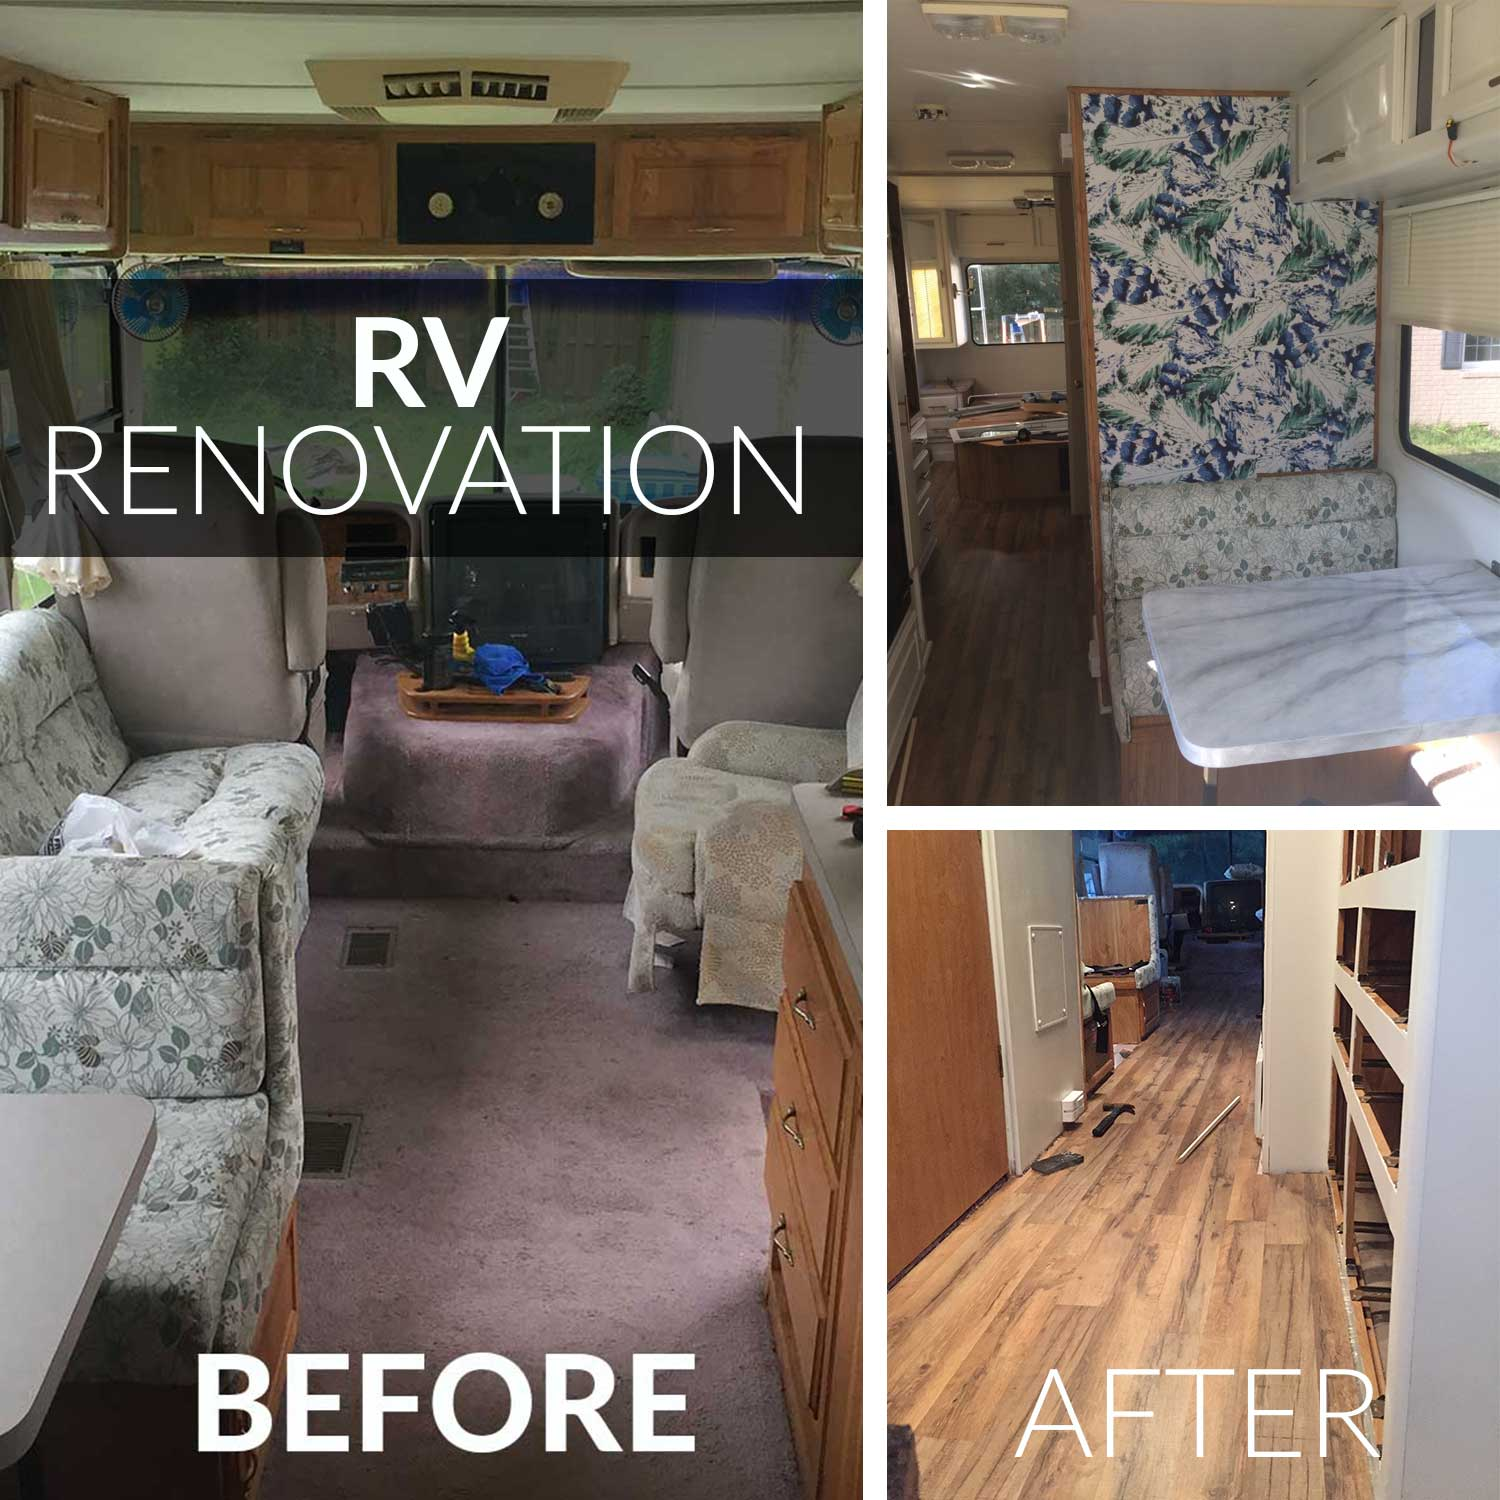 Our RV Renovation